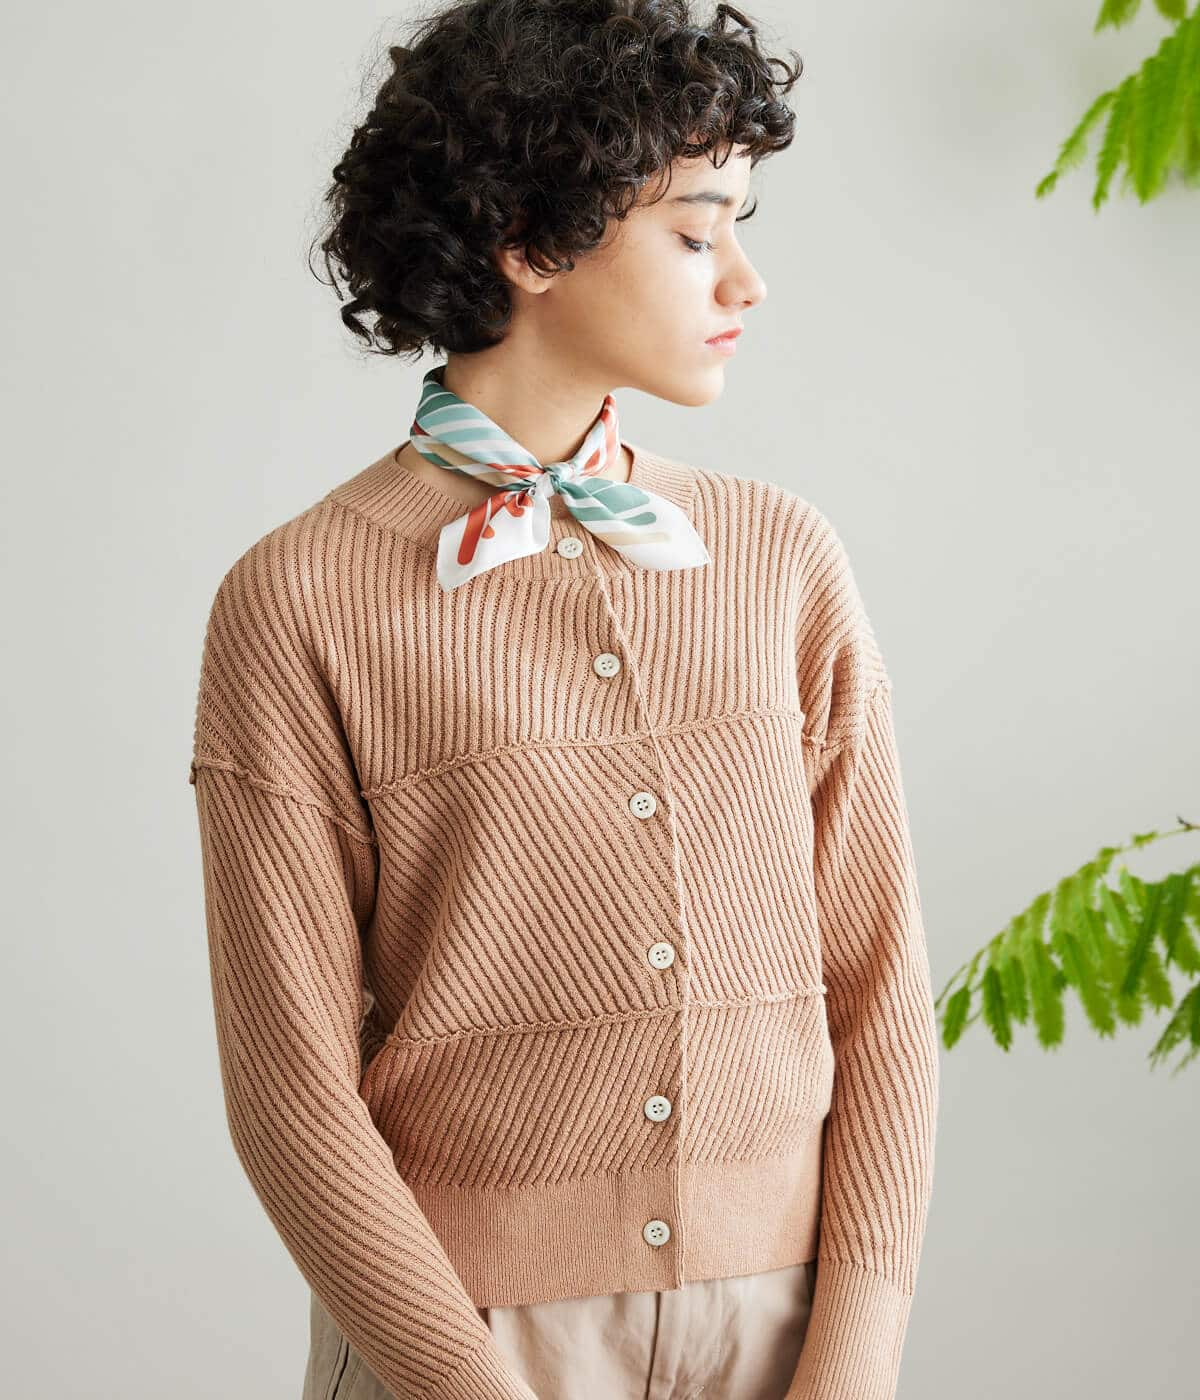 Linen Cotton Drop Needle Knitting ショートカーディガン